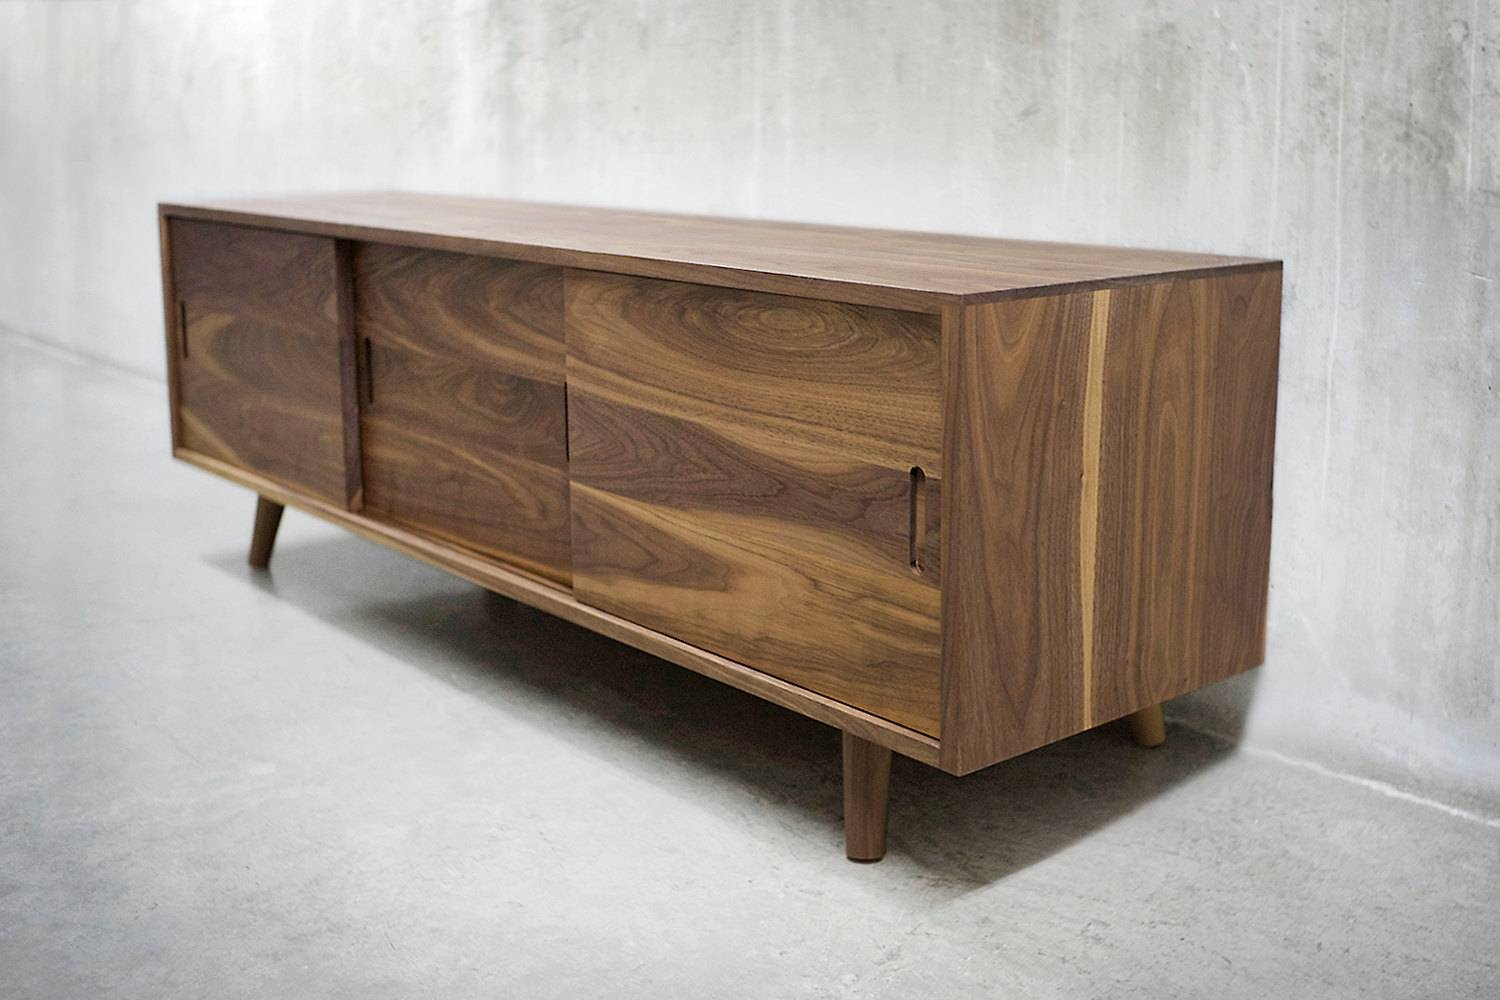 Inspiration about 60 Solid Black Walnut Credenza/ Sideboard/ Cabinet/ Intended For Walnut And Black Sideboard (#6 of 20)